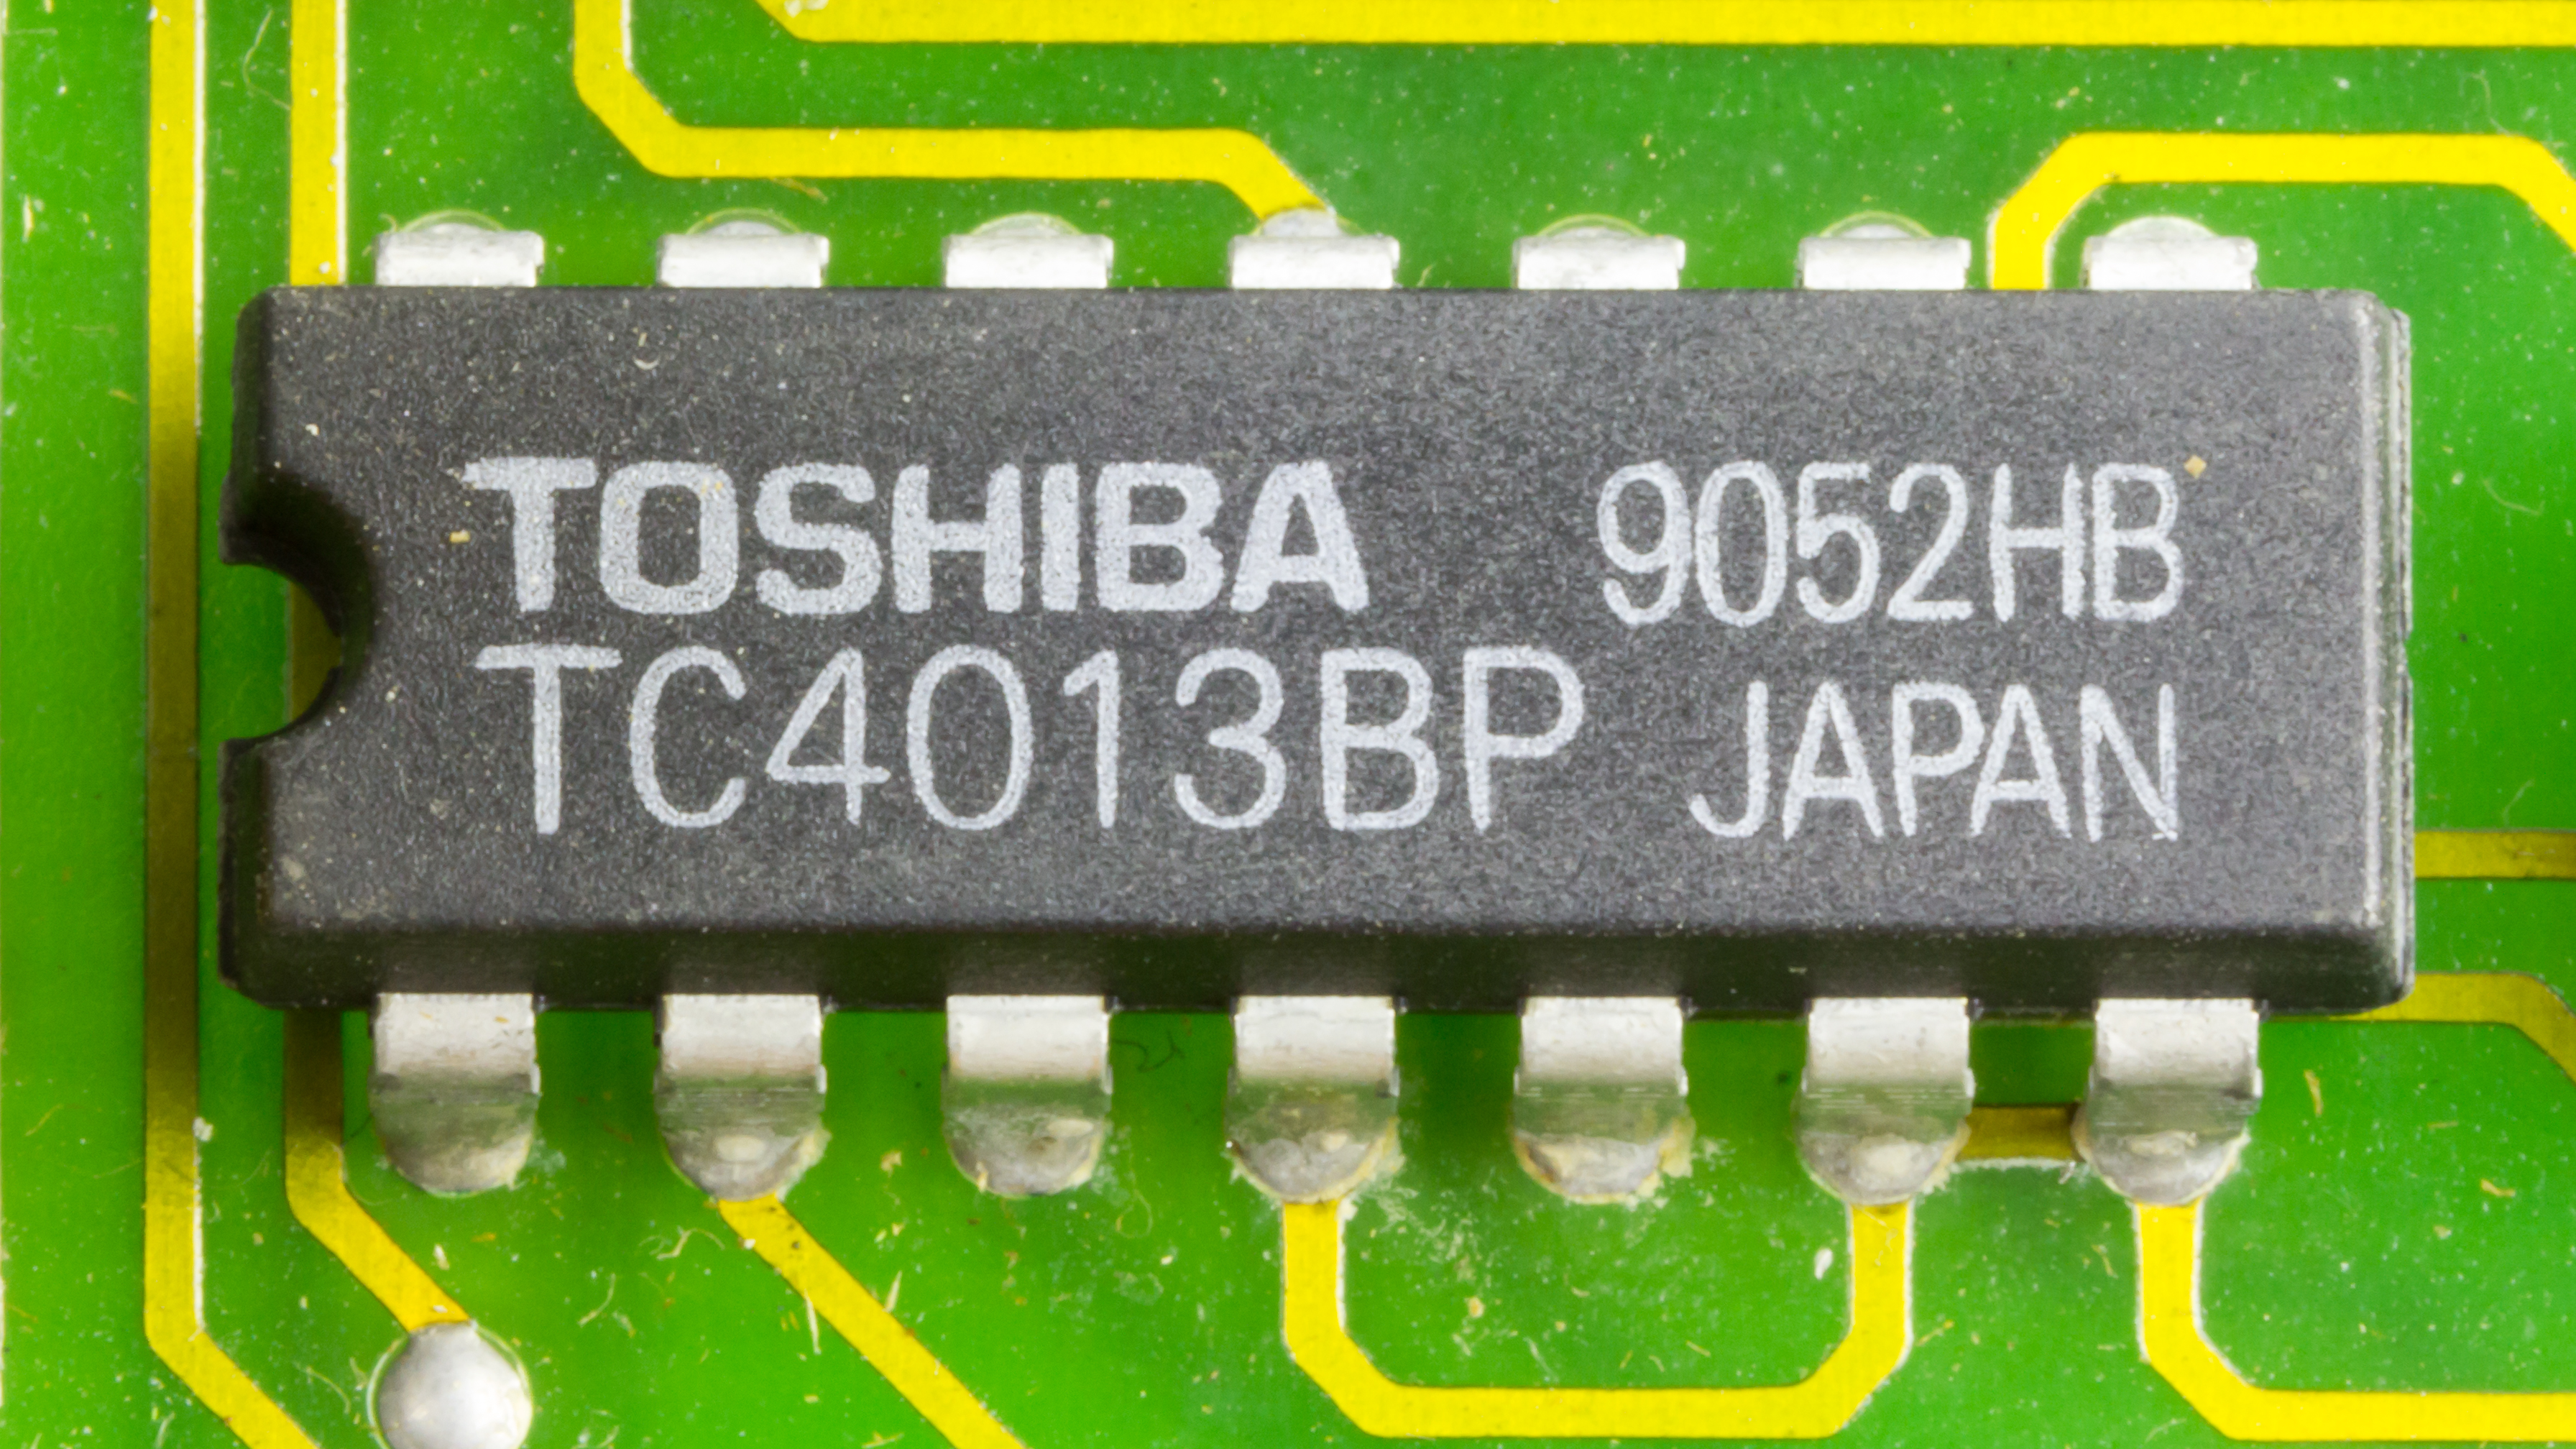 Life Notes Doctor Scientist Entrepreneur Printed Circuit Board Technology Conceptual In 2015 Toshiba Corporation Based Minato Tokyo Japan Disclosed To Its Investors Of A Major Corporate Accounting Malpractice